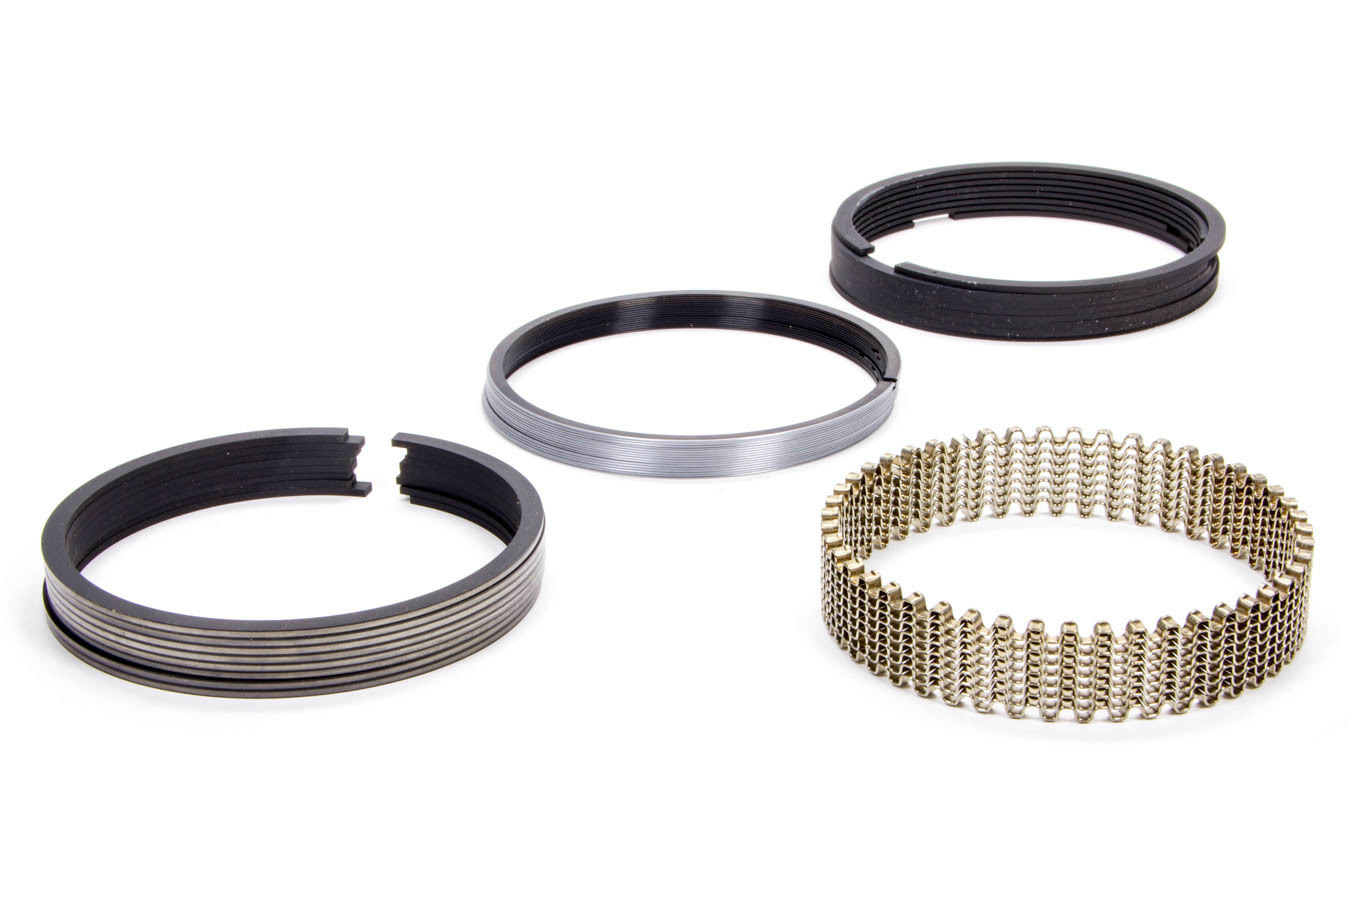 Hastings 2M661030 Piston Rings, 4.155 in Bore, 5/64 x 5/64 x 3/16 in Thick, Standard Tension, Moly, 8 Cylinder, Kit